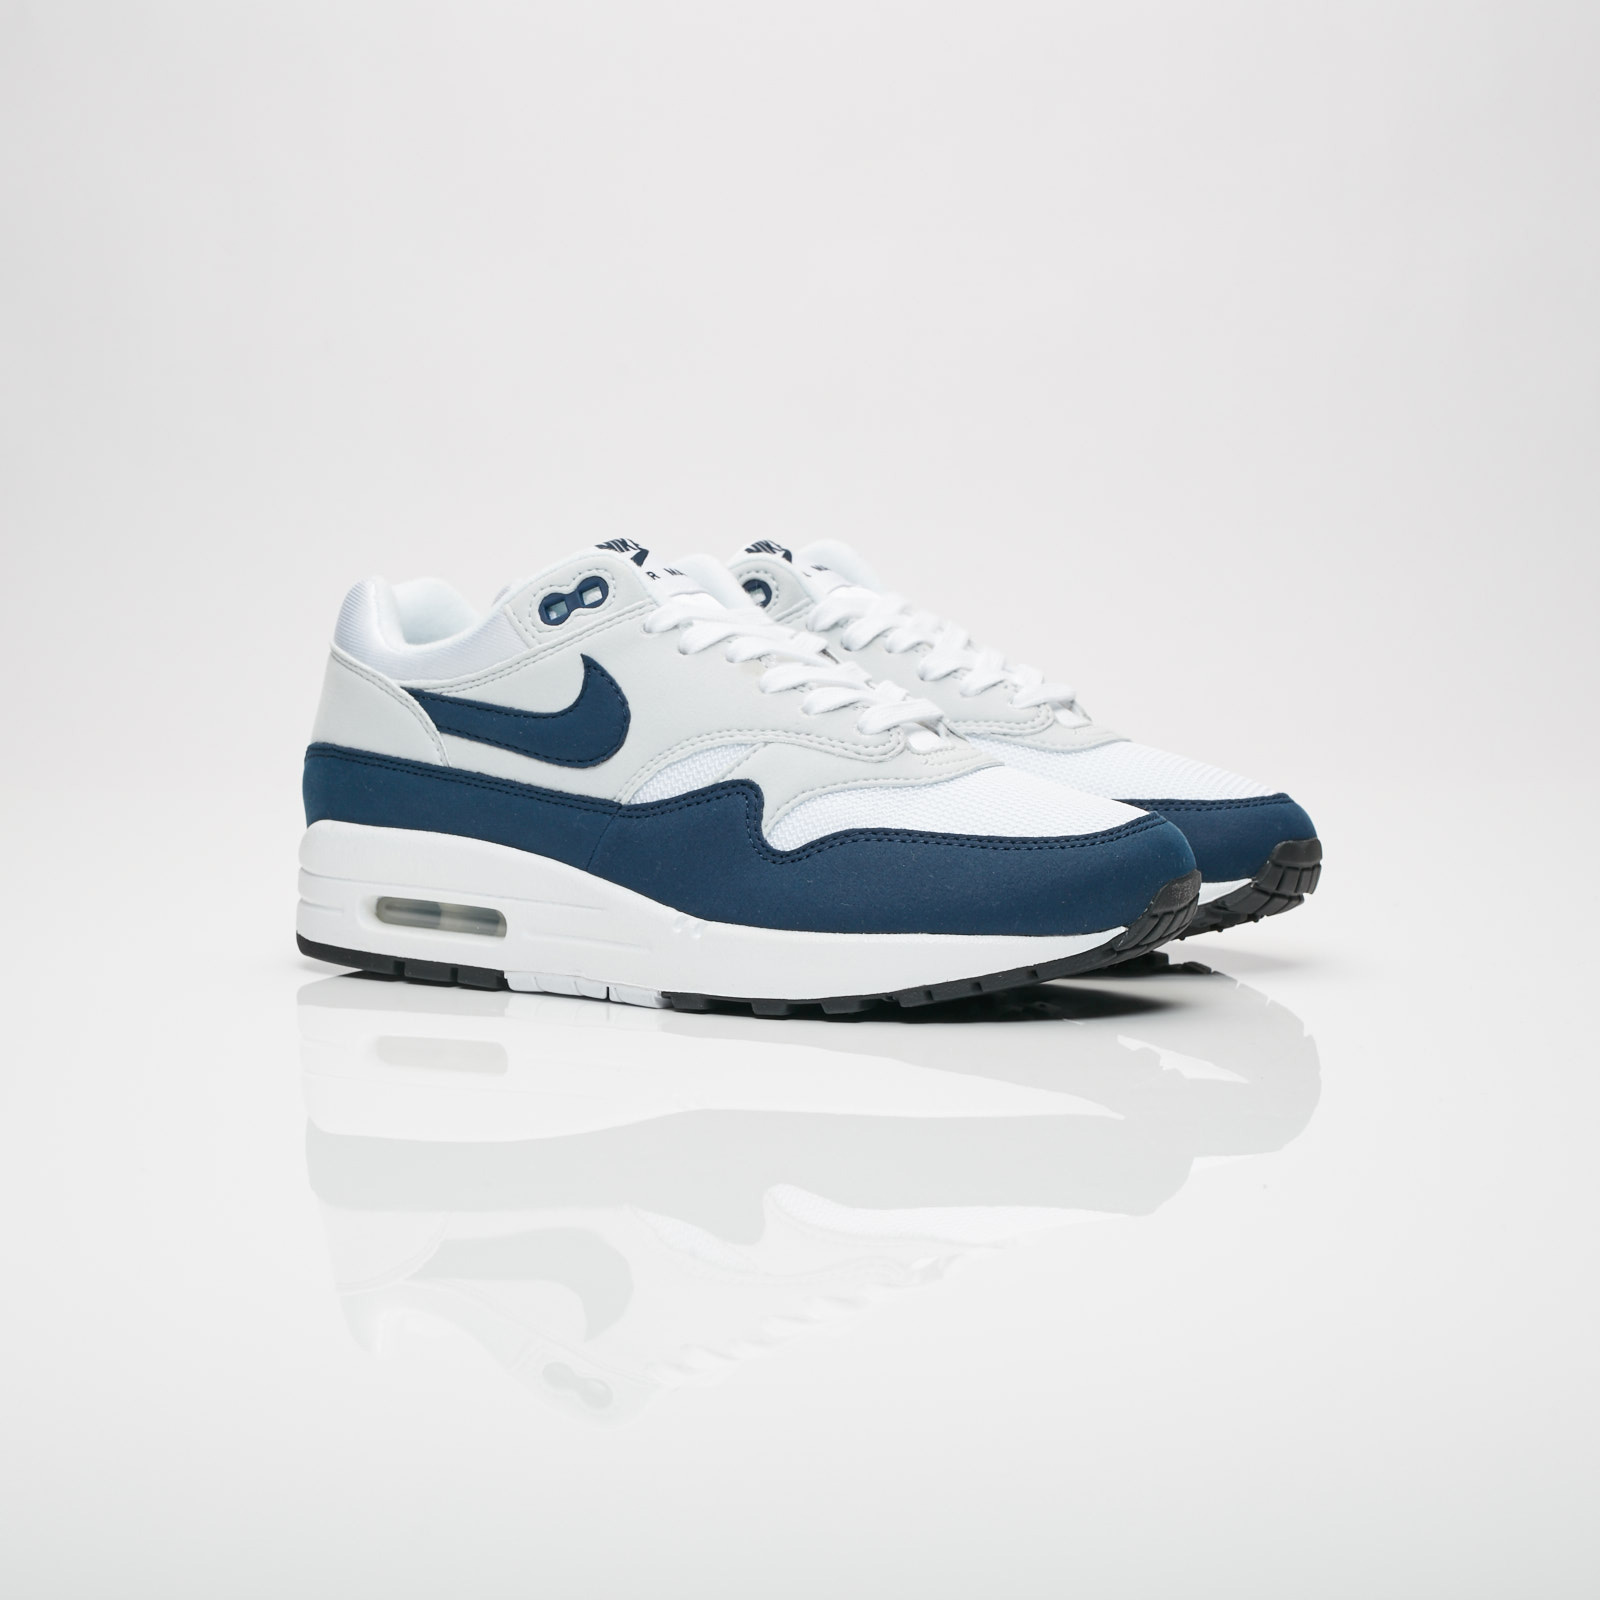 info for 6606a 9a134 Nike Sportswear Air Max 1